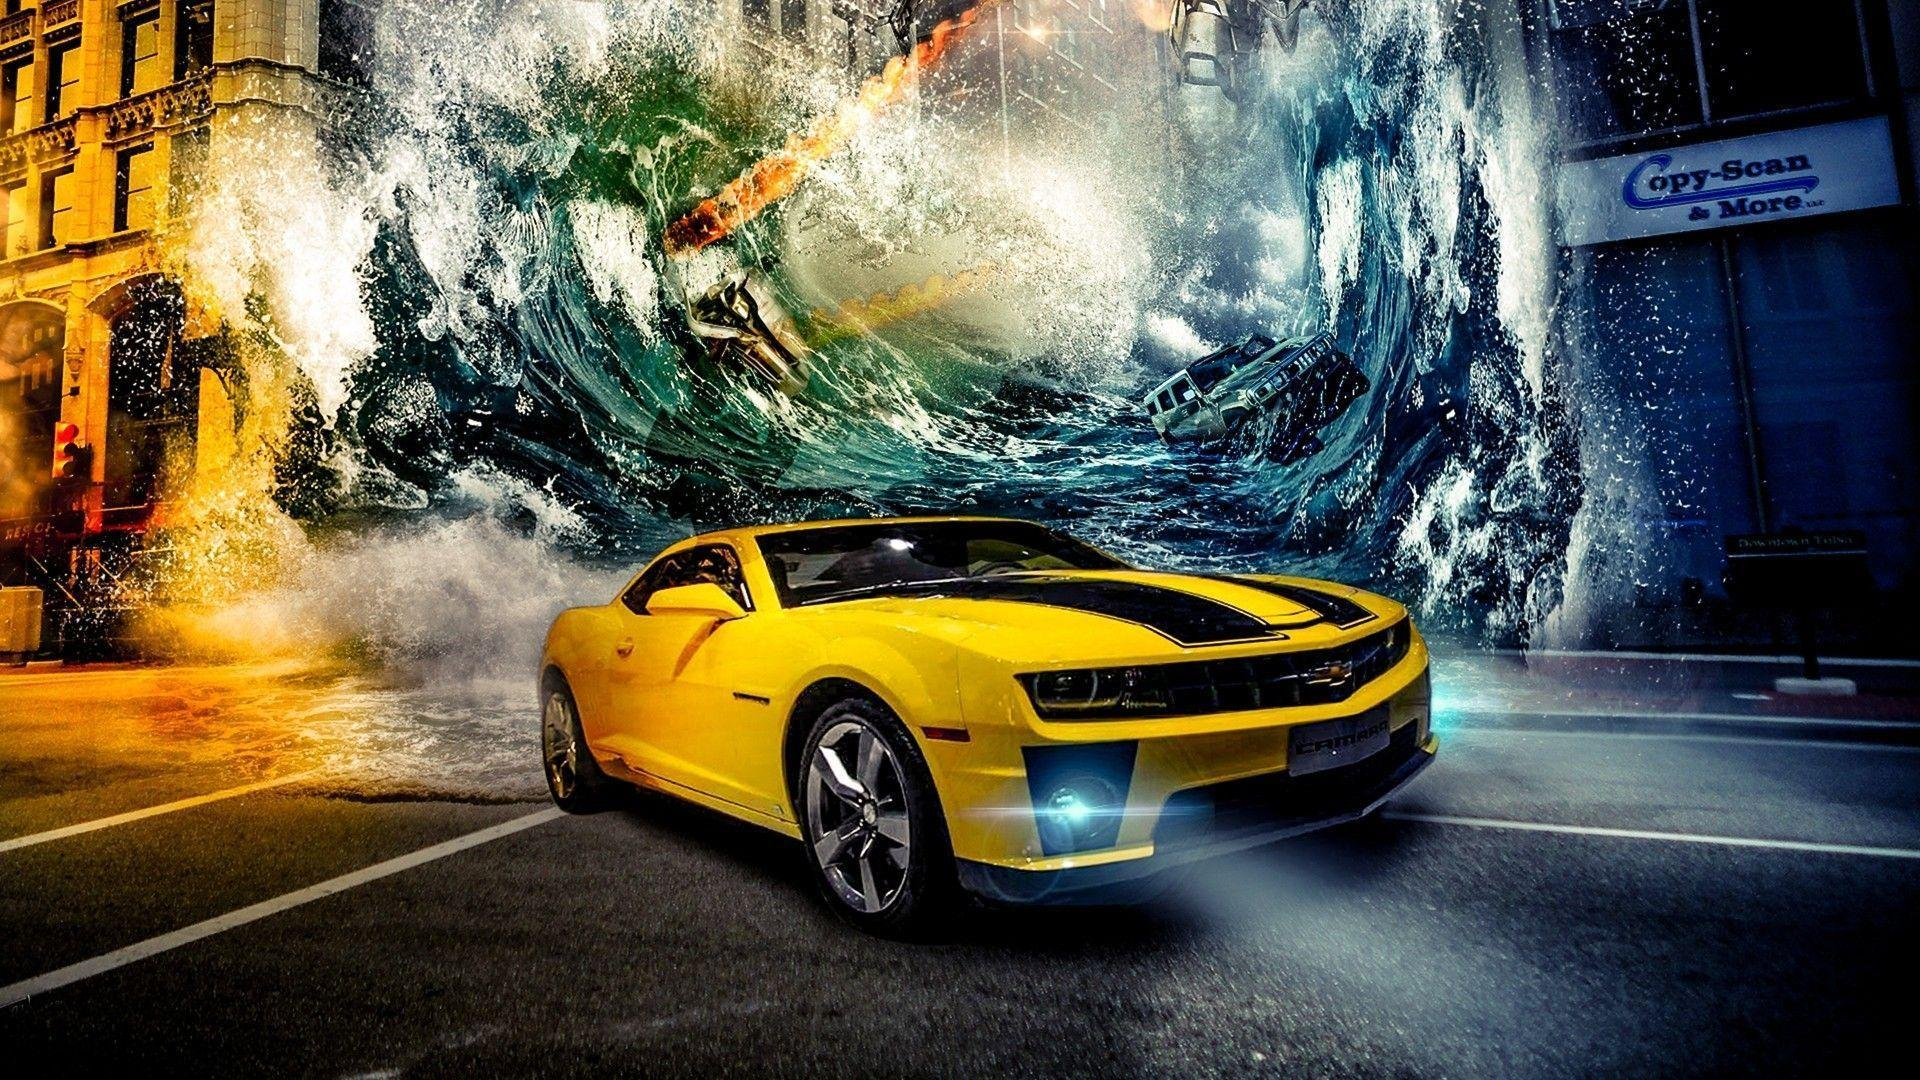 Car Chevrolet Camaro Bumblebee Wallpapers HD Desktop And Mobile